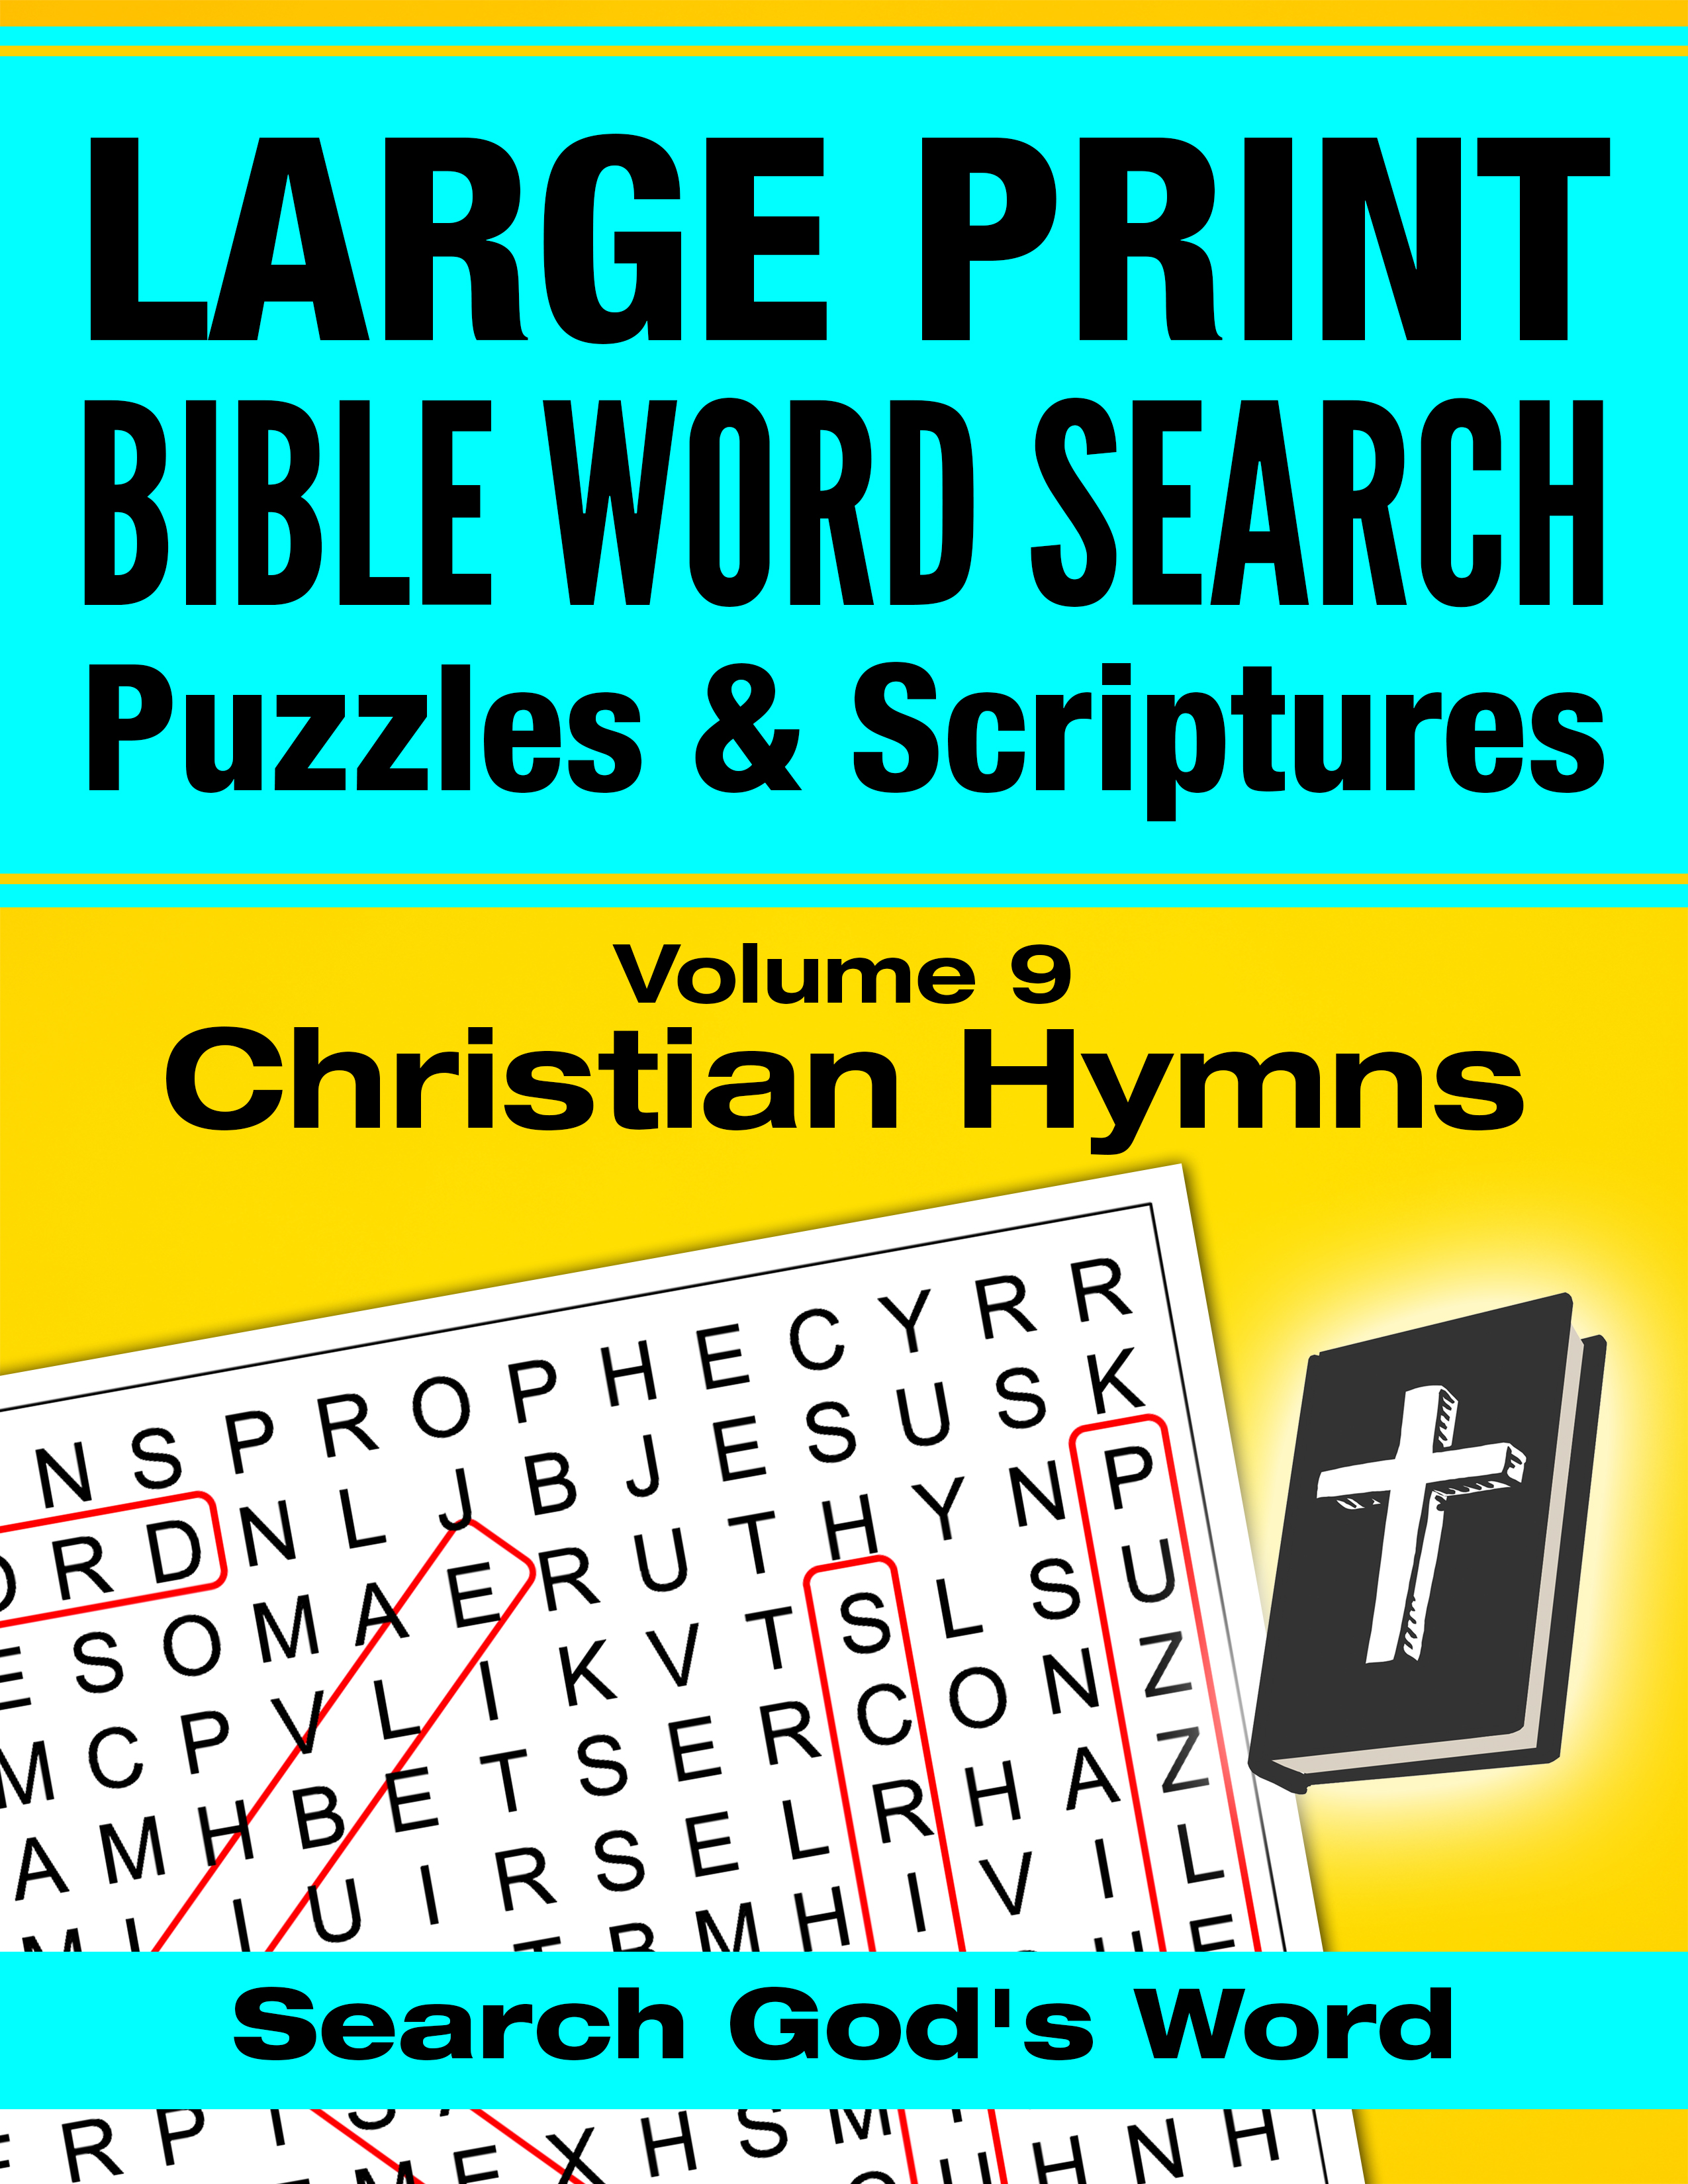 Large Print Bible Word Search Christian Hymns Puzzles